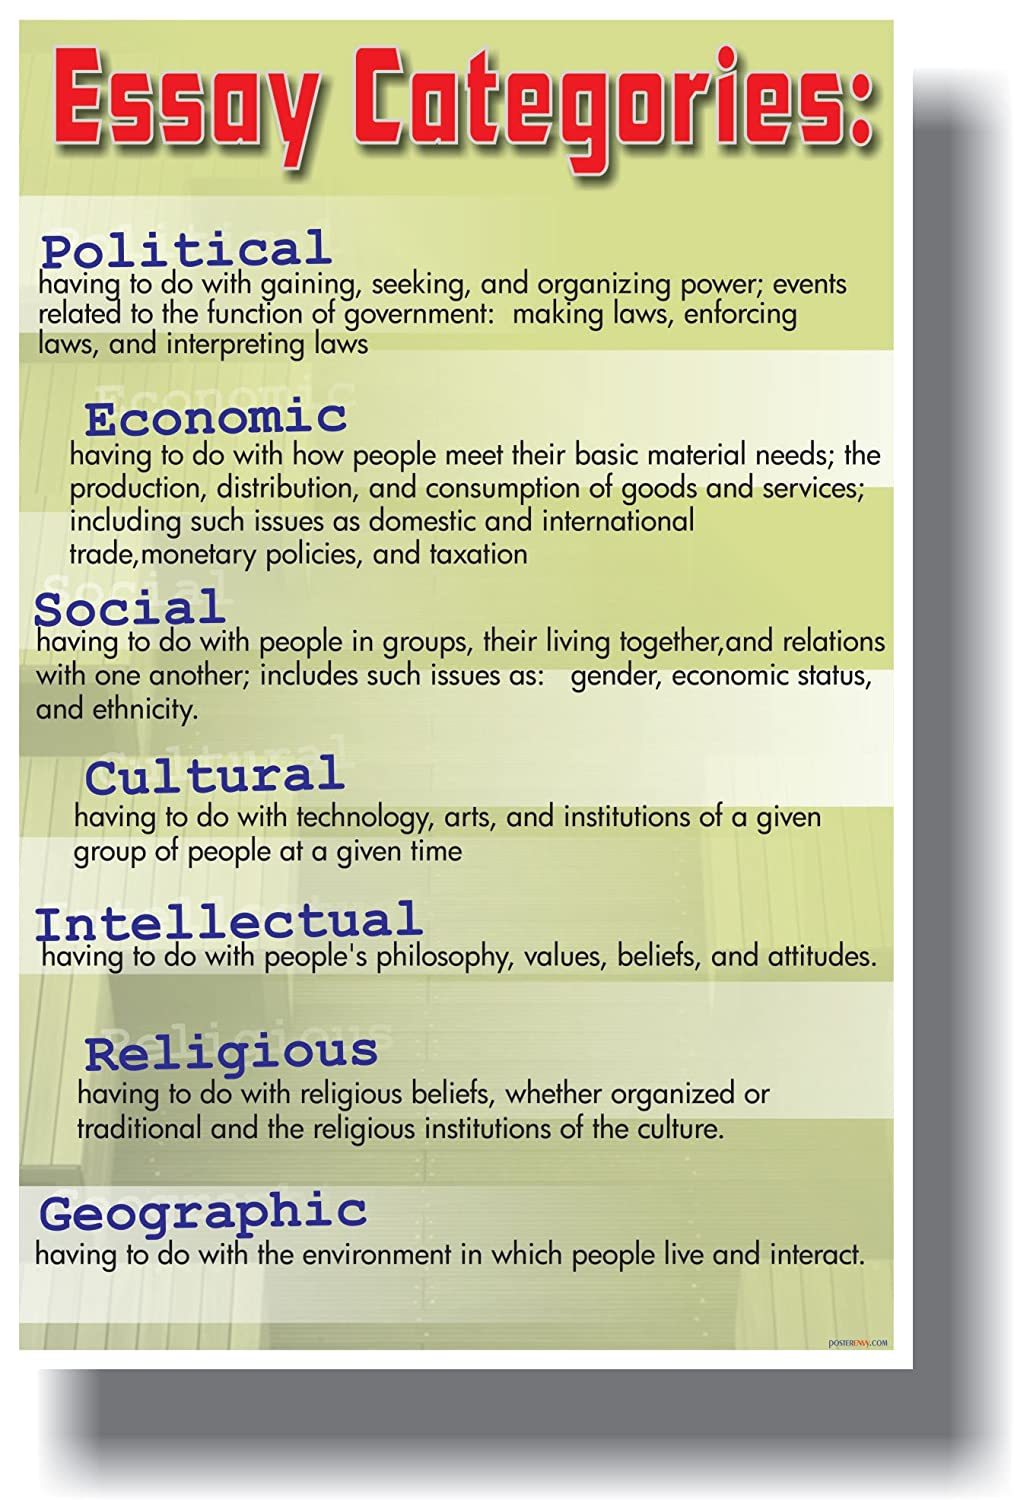 cultural values essay Read dimensions of culture, values free essay and over 88,000 other research documents dimensions of culture, values abstract we live in a world of changing global.